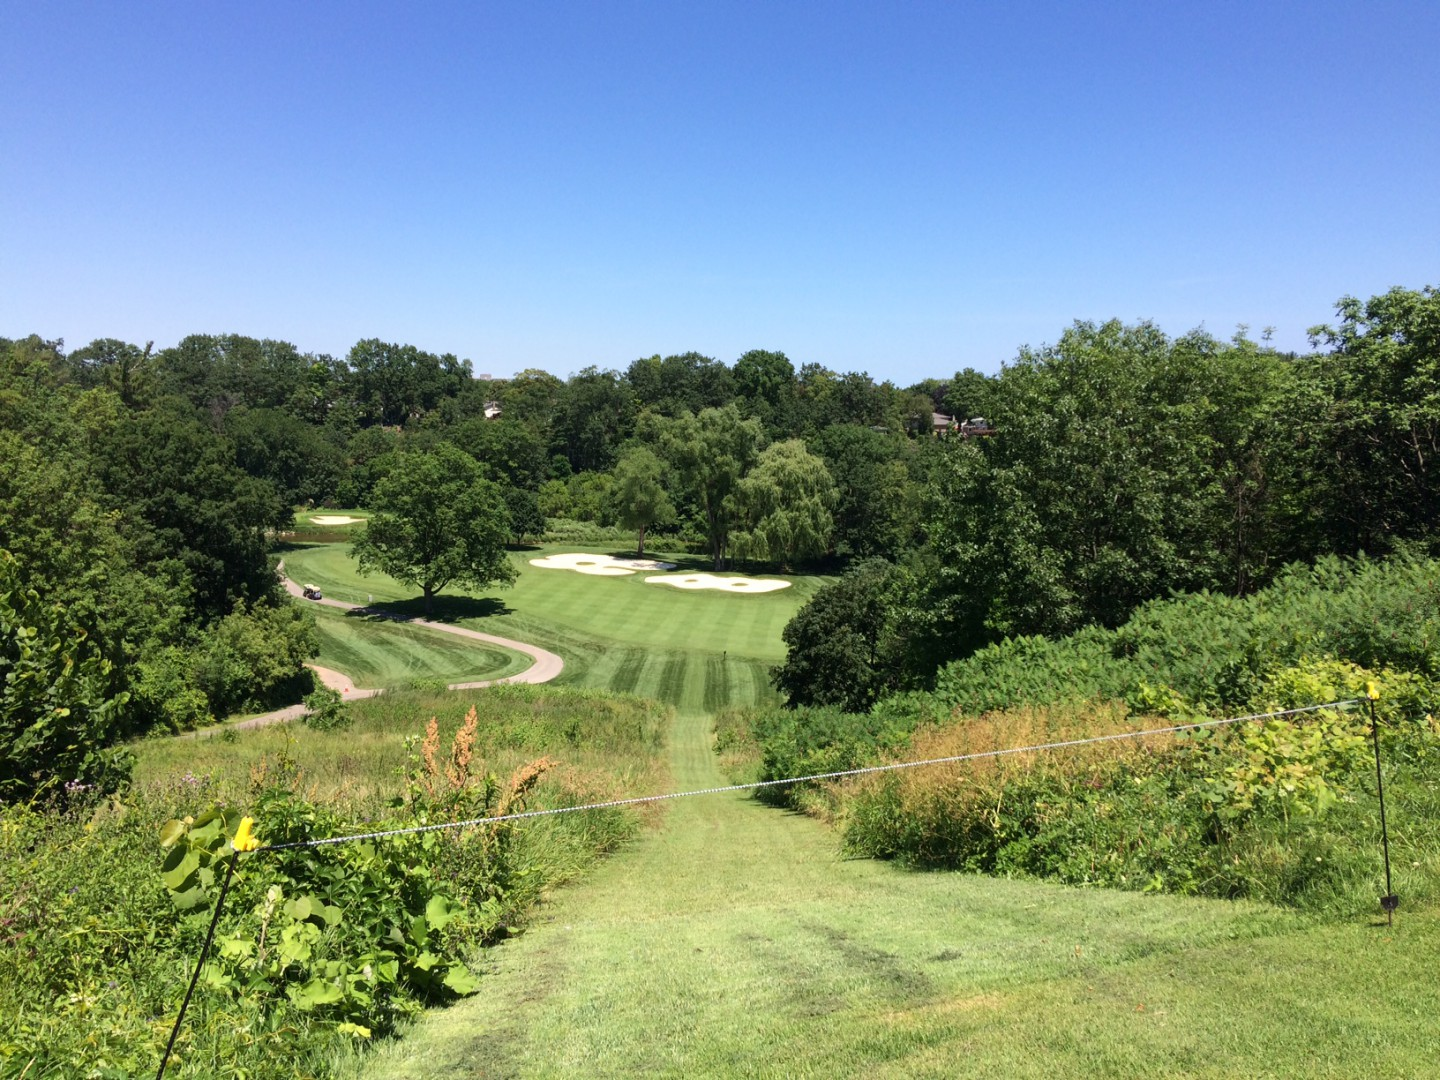 Many-time RBC Canadian Open host Glen Abbey is a fixture on the PGA Tour, but it may be going away in the near future. (Visit Oakville)